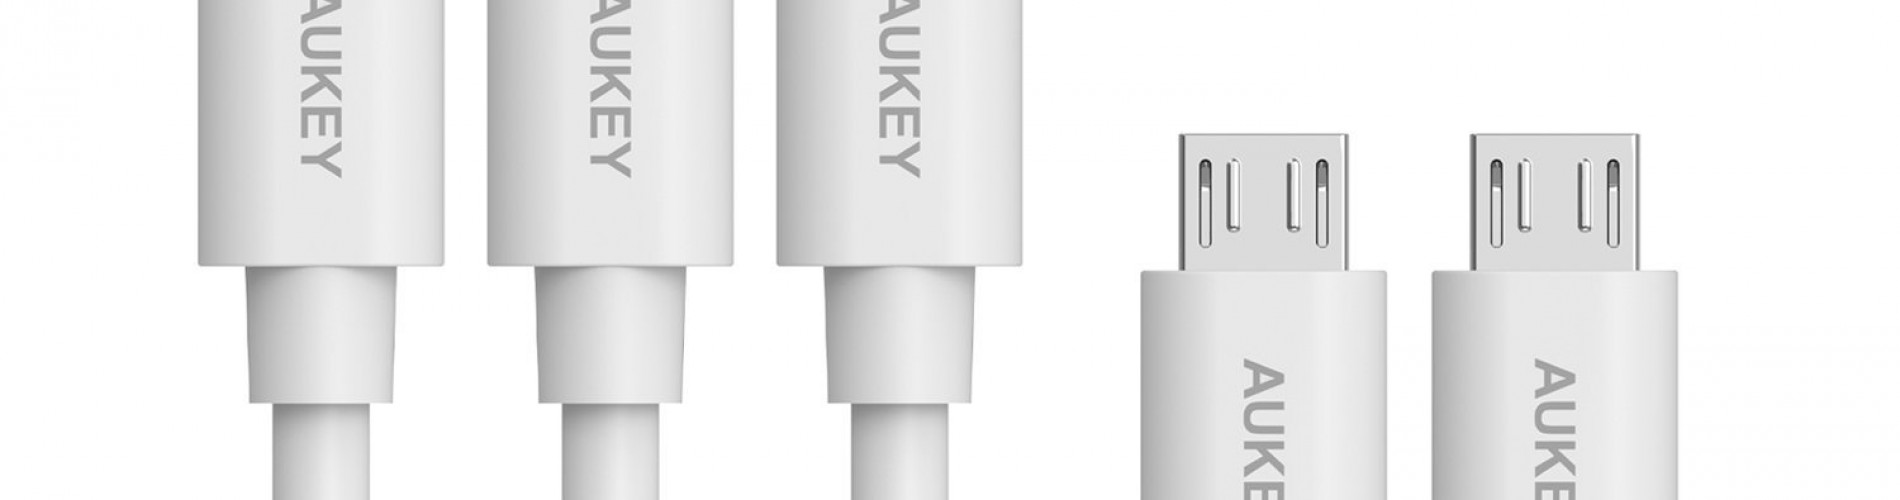 5-pack MicroUSB cables, $6.49